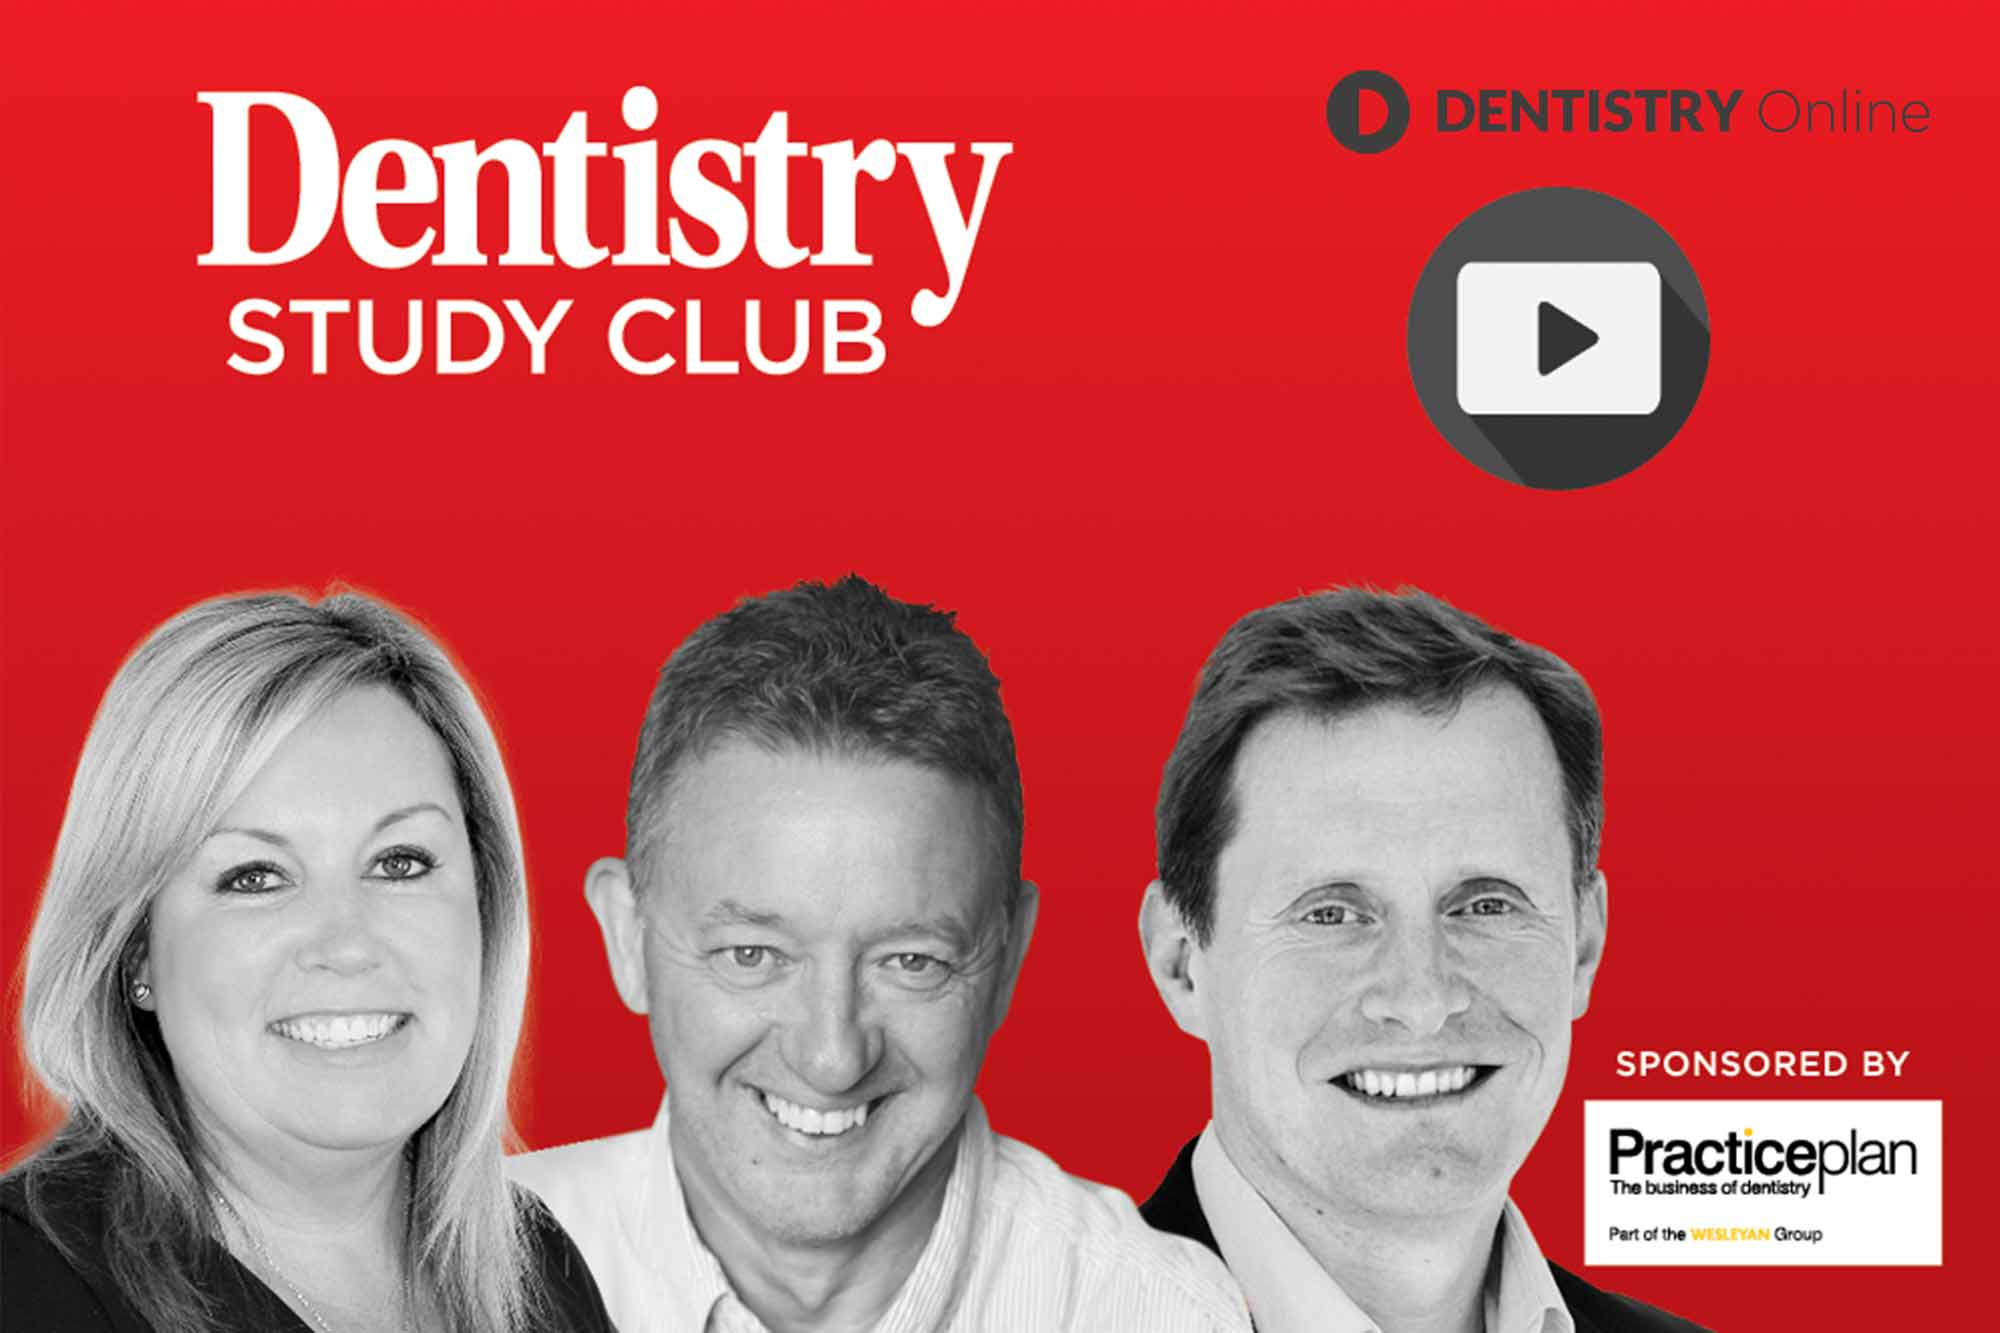 Join Zoe Close, Nigel Jones and Les Jones for a free webinar exploring the conversion to private dentistry on Tuesday 6 October at 19:00